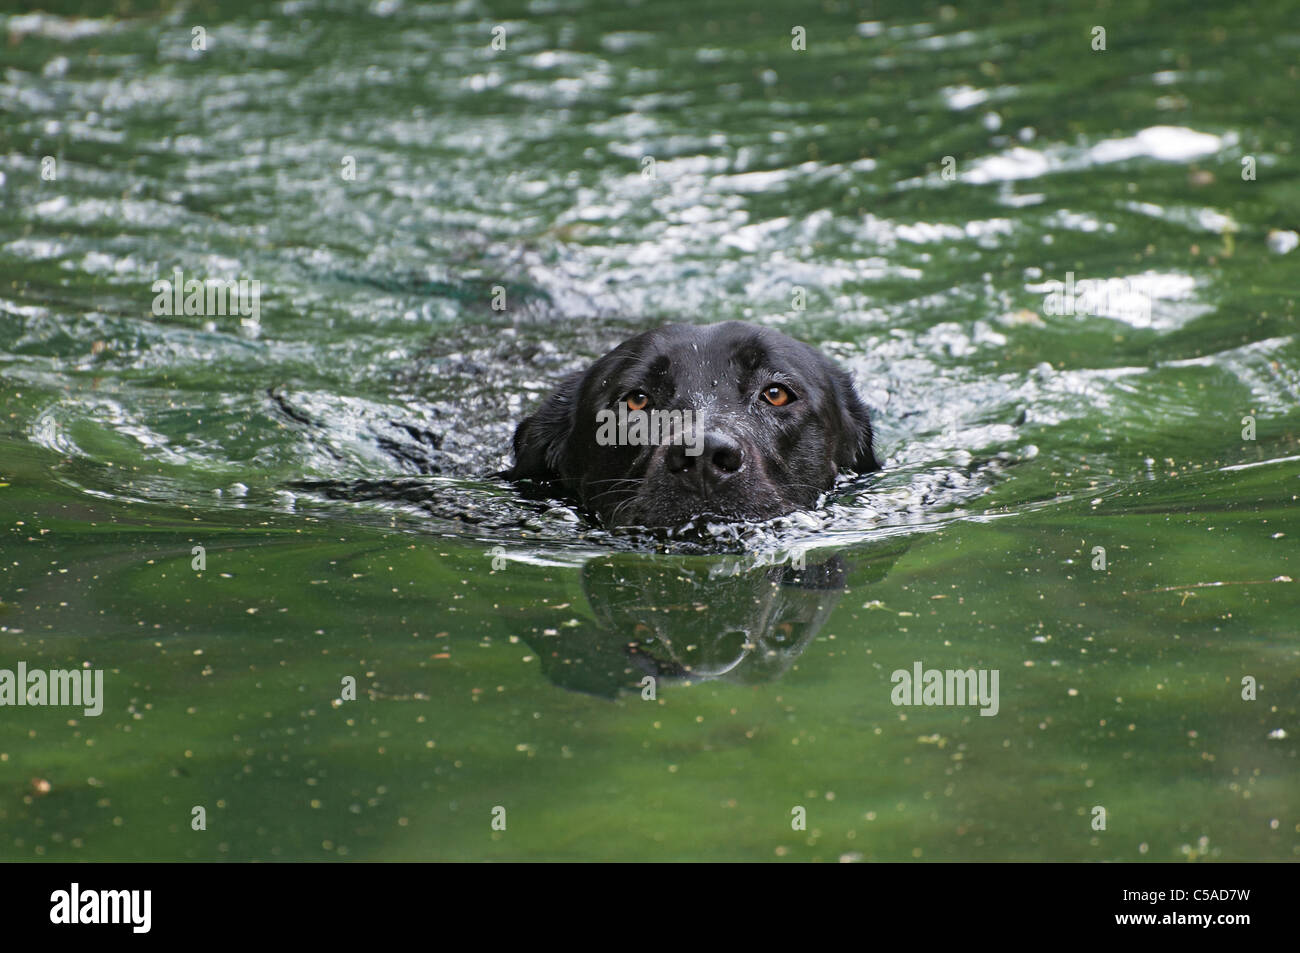 Labrador retriever dog playfully retrieves sticks thrown into the water at Manatee Springs State Park Florida - Stock Image